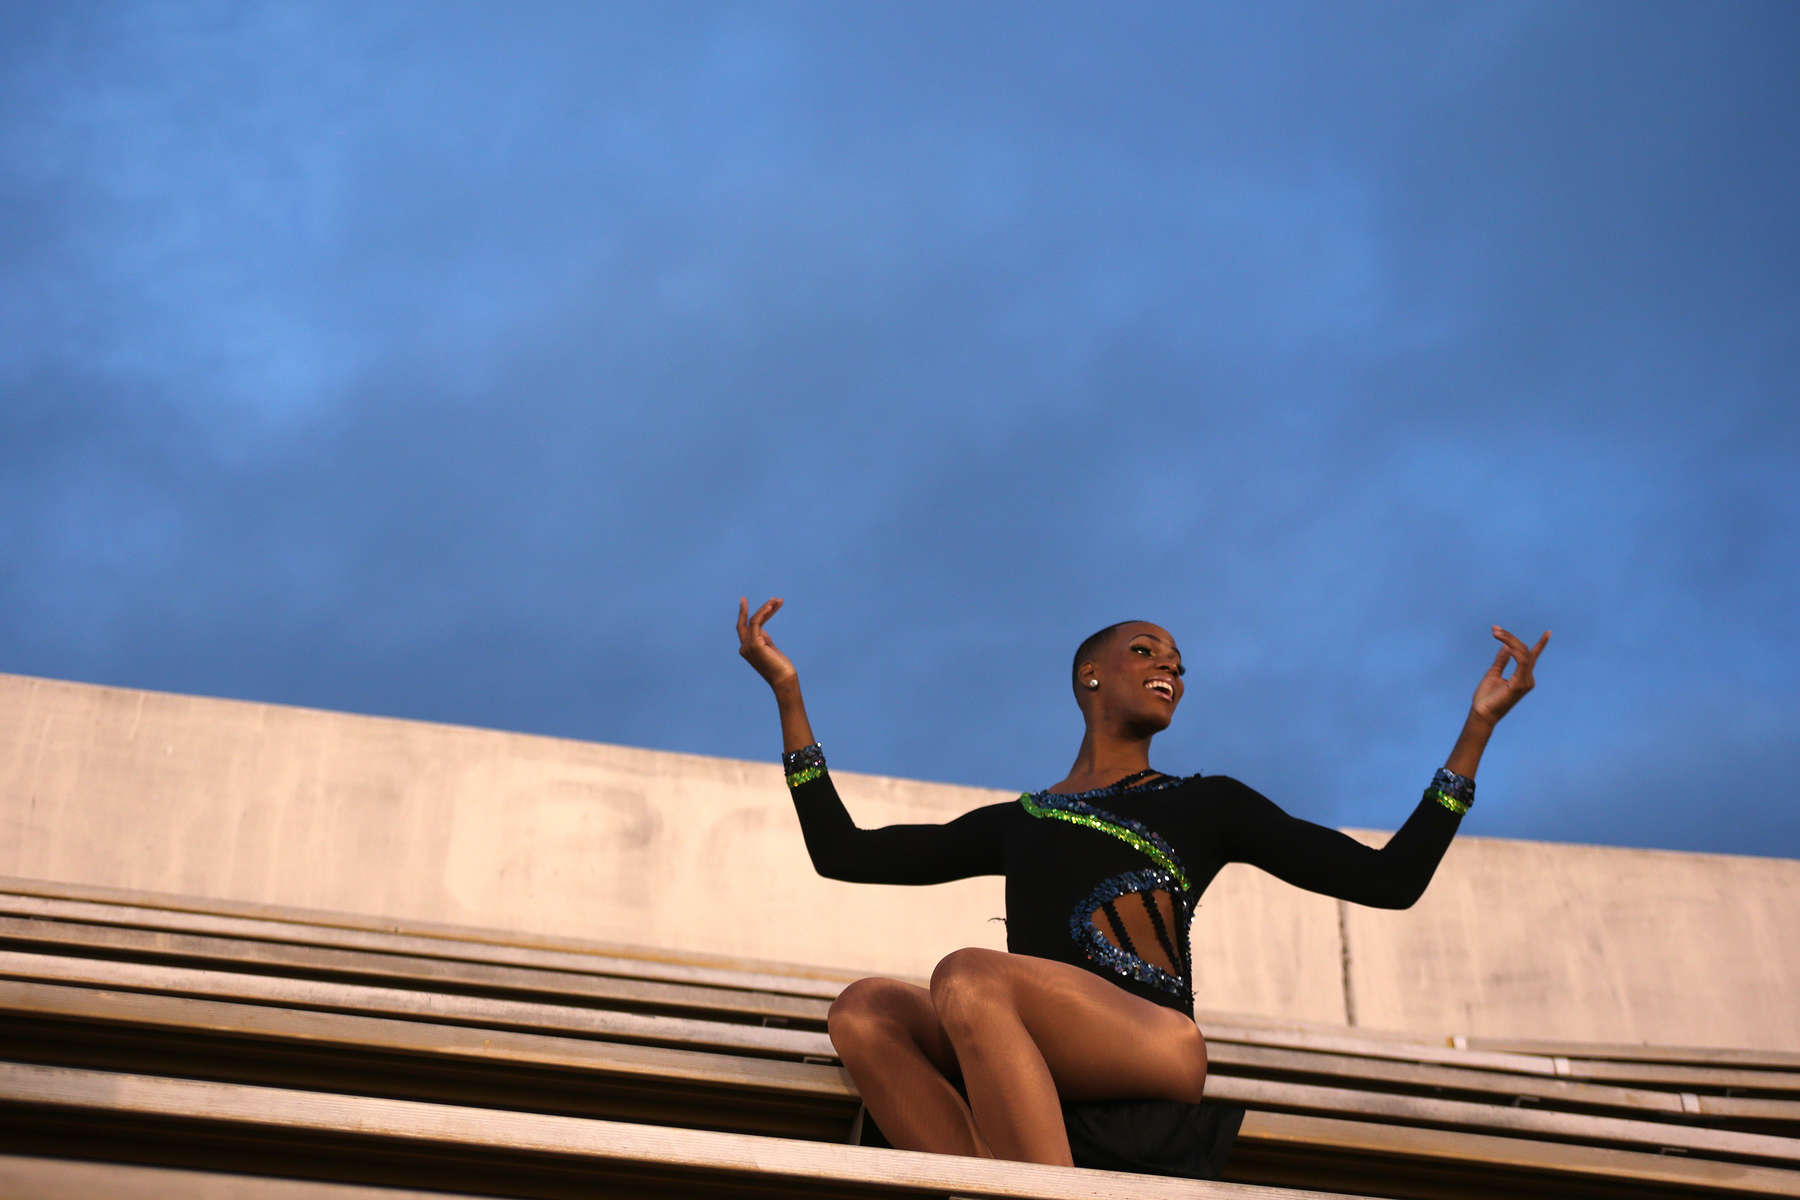 Adrian Clemons, 23, of the the Prancing Elites performs in the stands at a Jackson State football game in Jackson, Miss. The group paid over $100 in ticket prices to perform in the crowd.